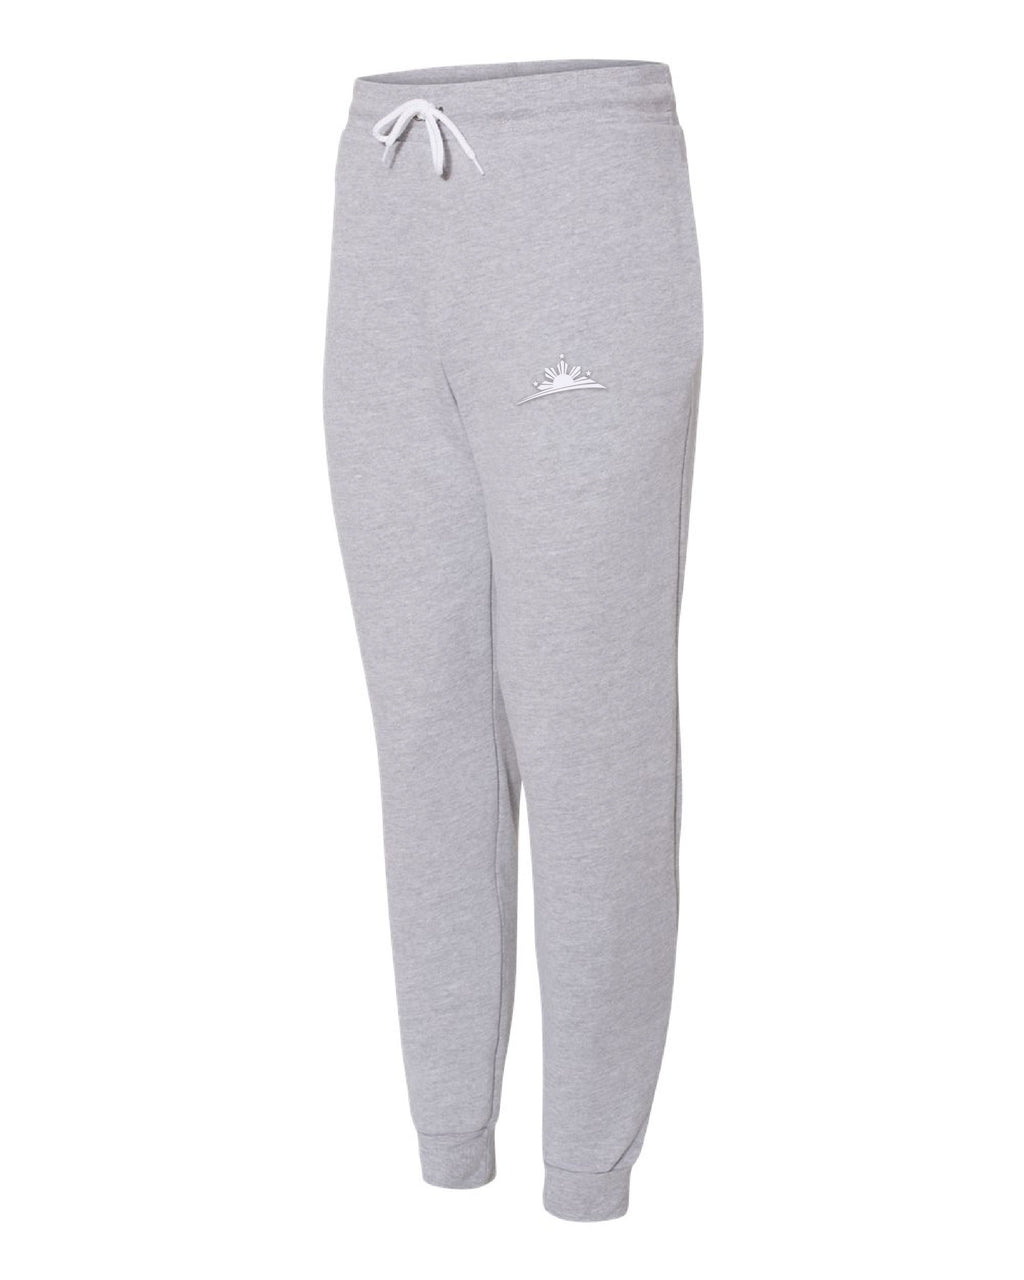 Jogger Sweatpants  - Women